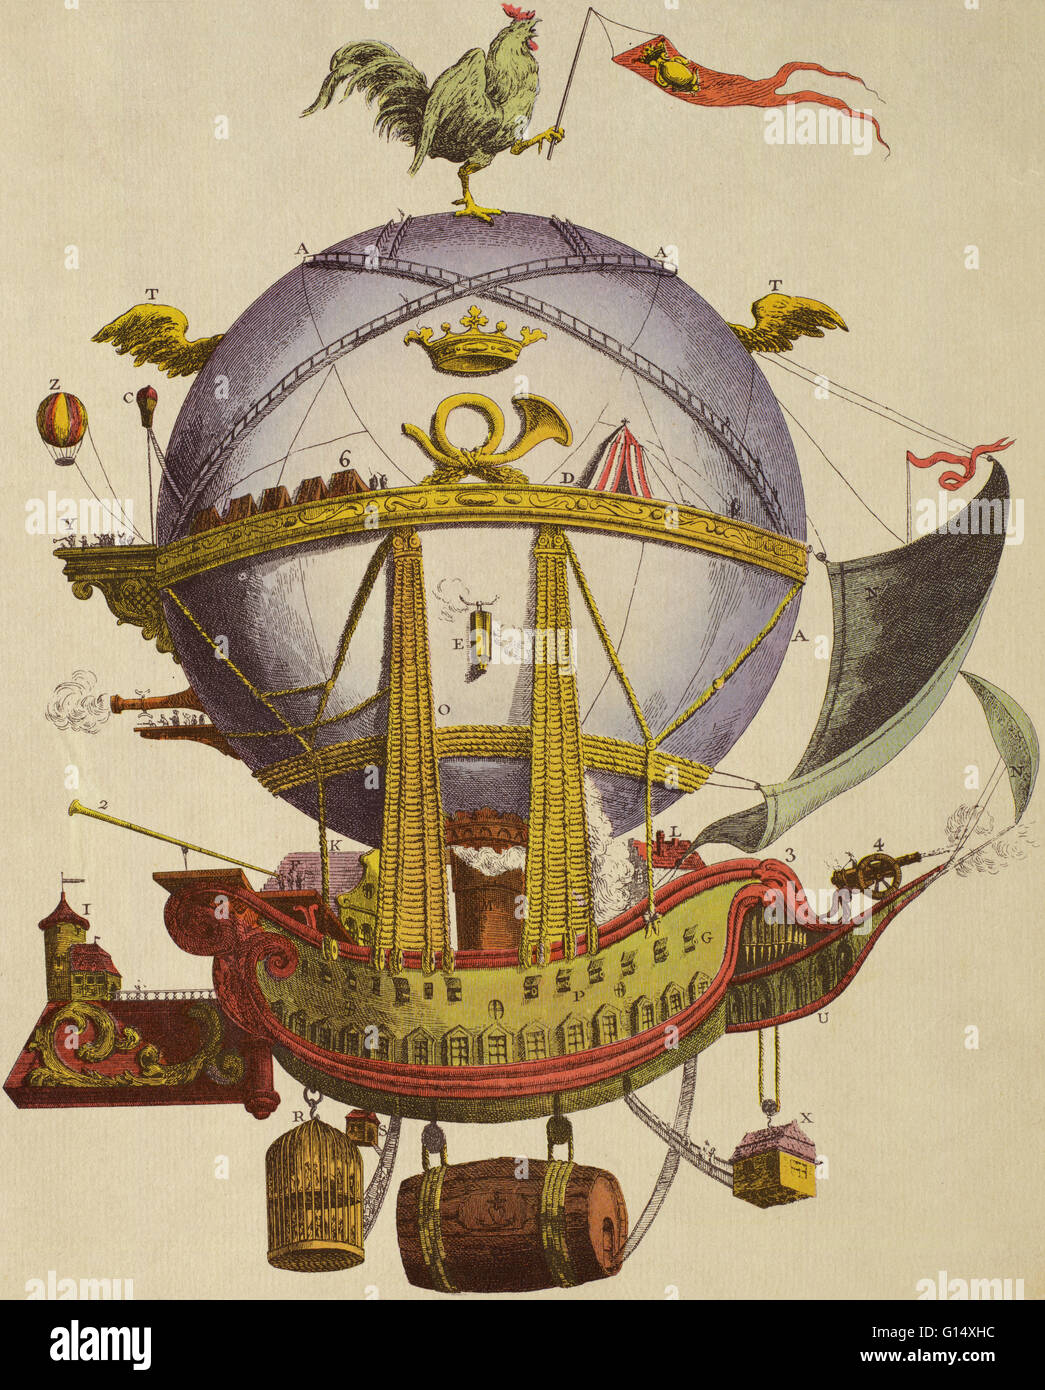 A design for an enormous hot air travel balloon called Le Minerve (Minerva) from 1803 by a French doctor named Etienne - Stock Image